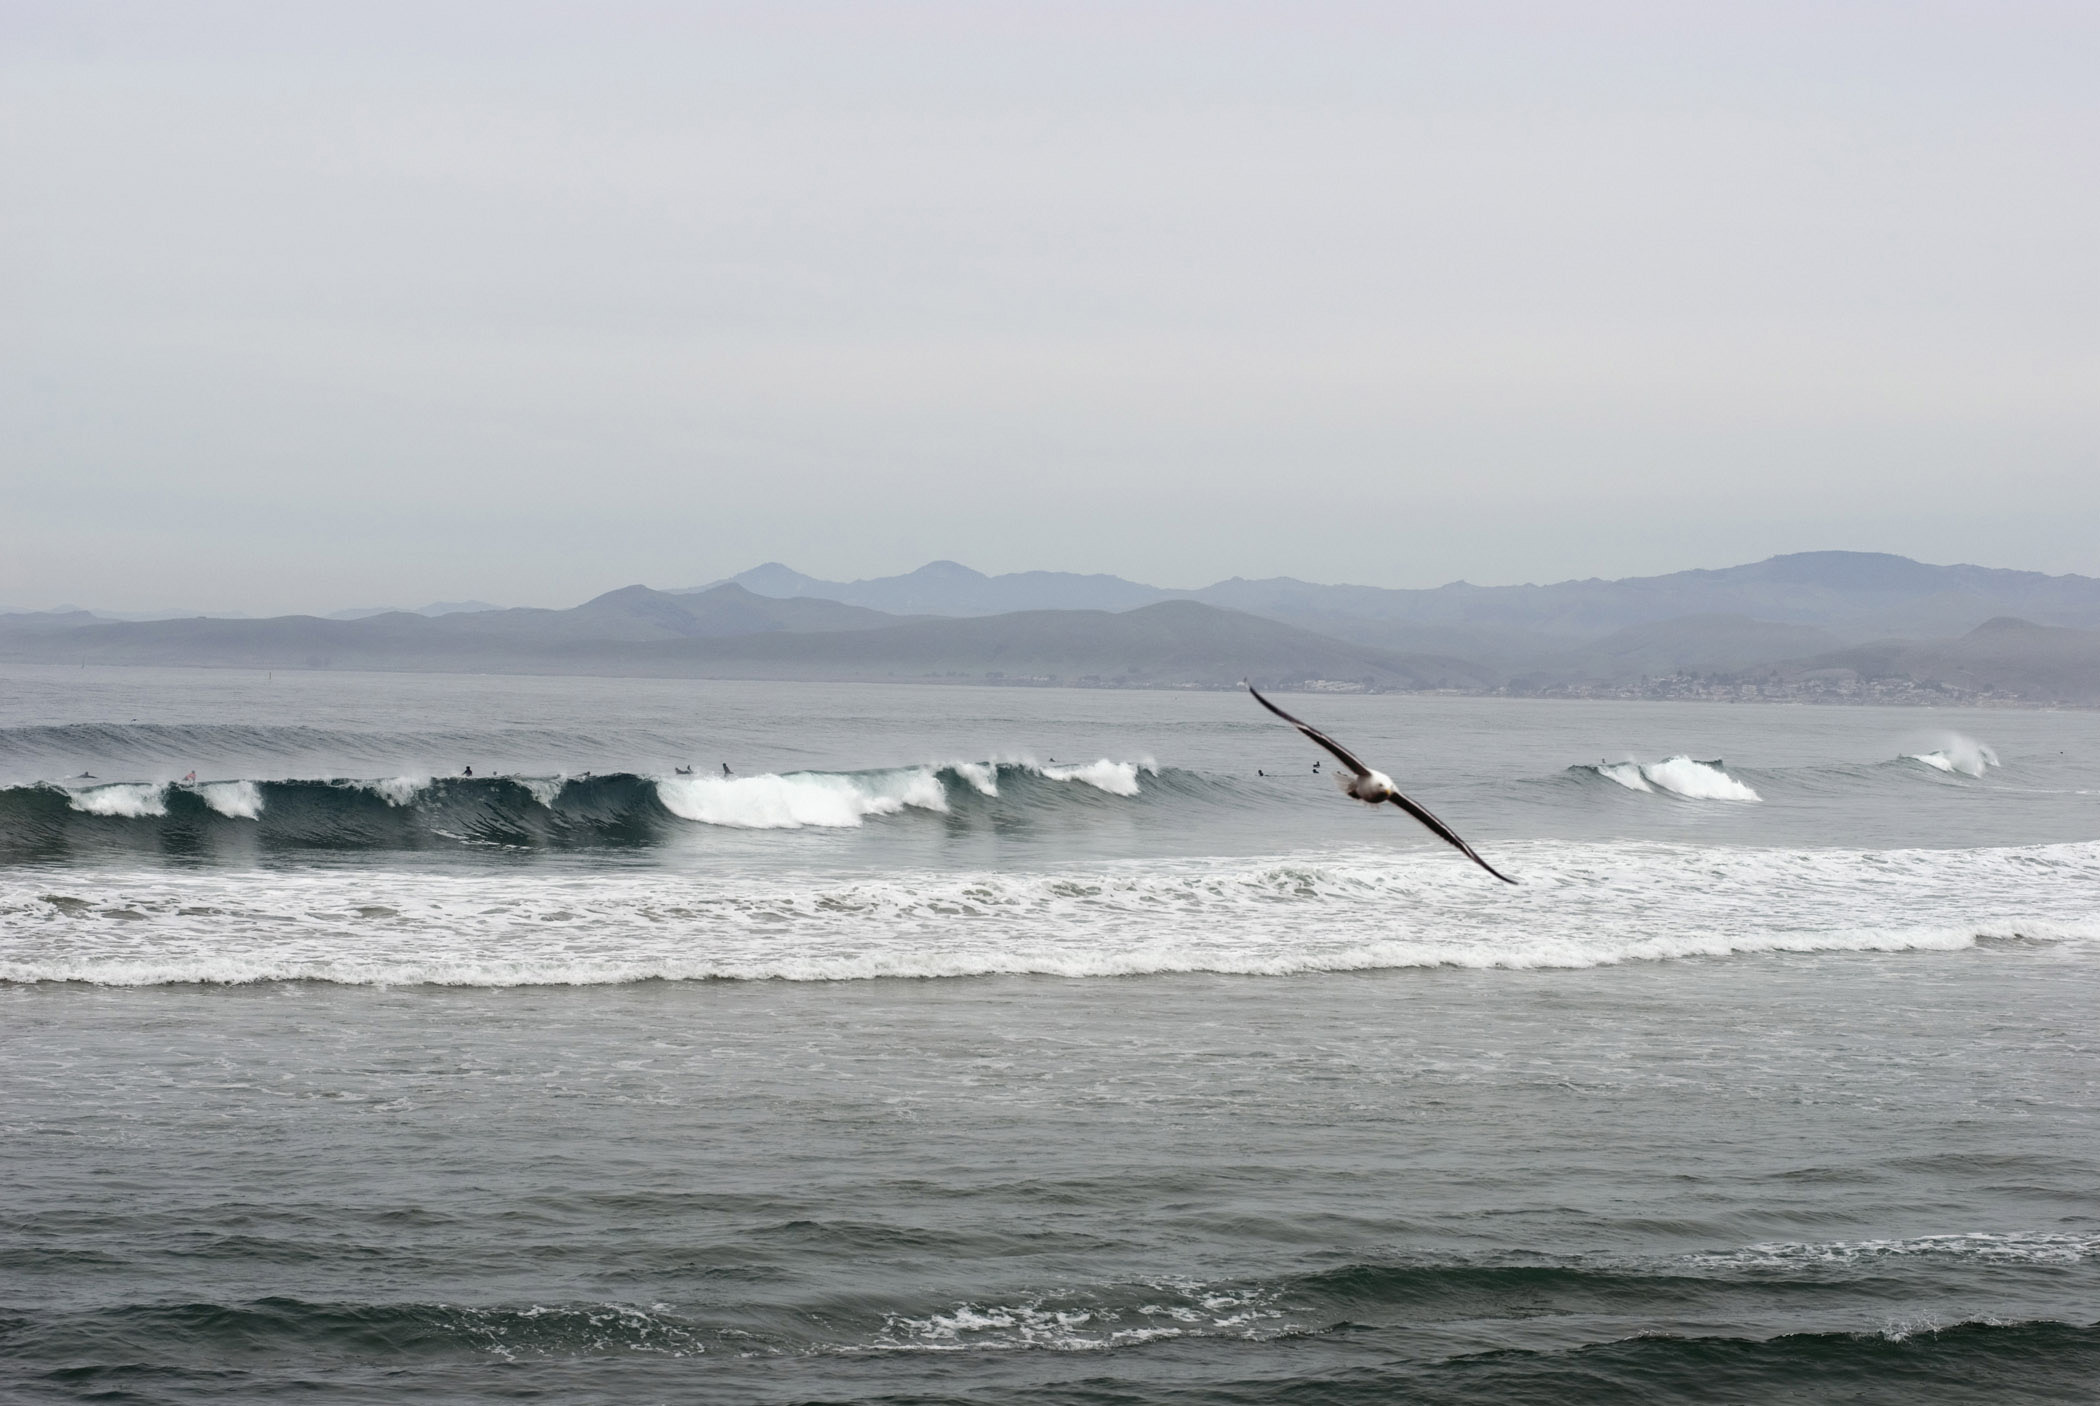 Bird Flying Above Waves of Beautiful Morro Bay Located in California. Captured in Extensive View with Mountains Afar.